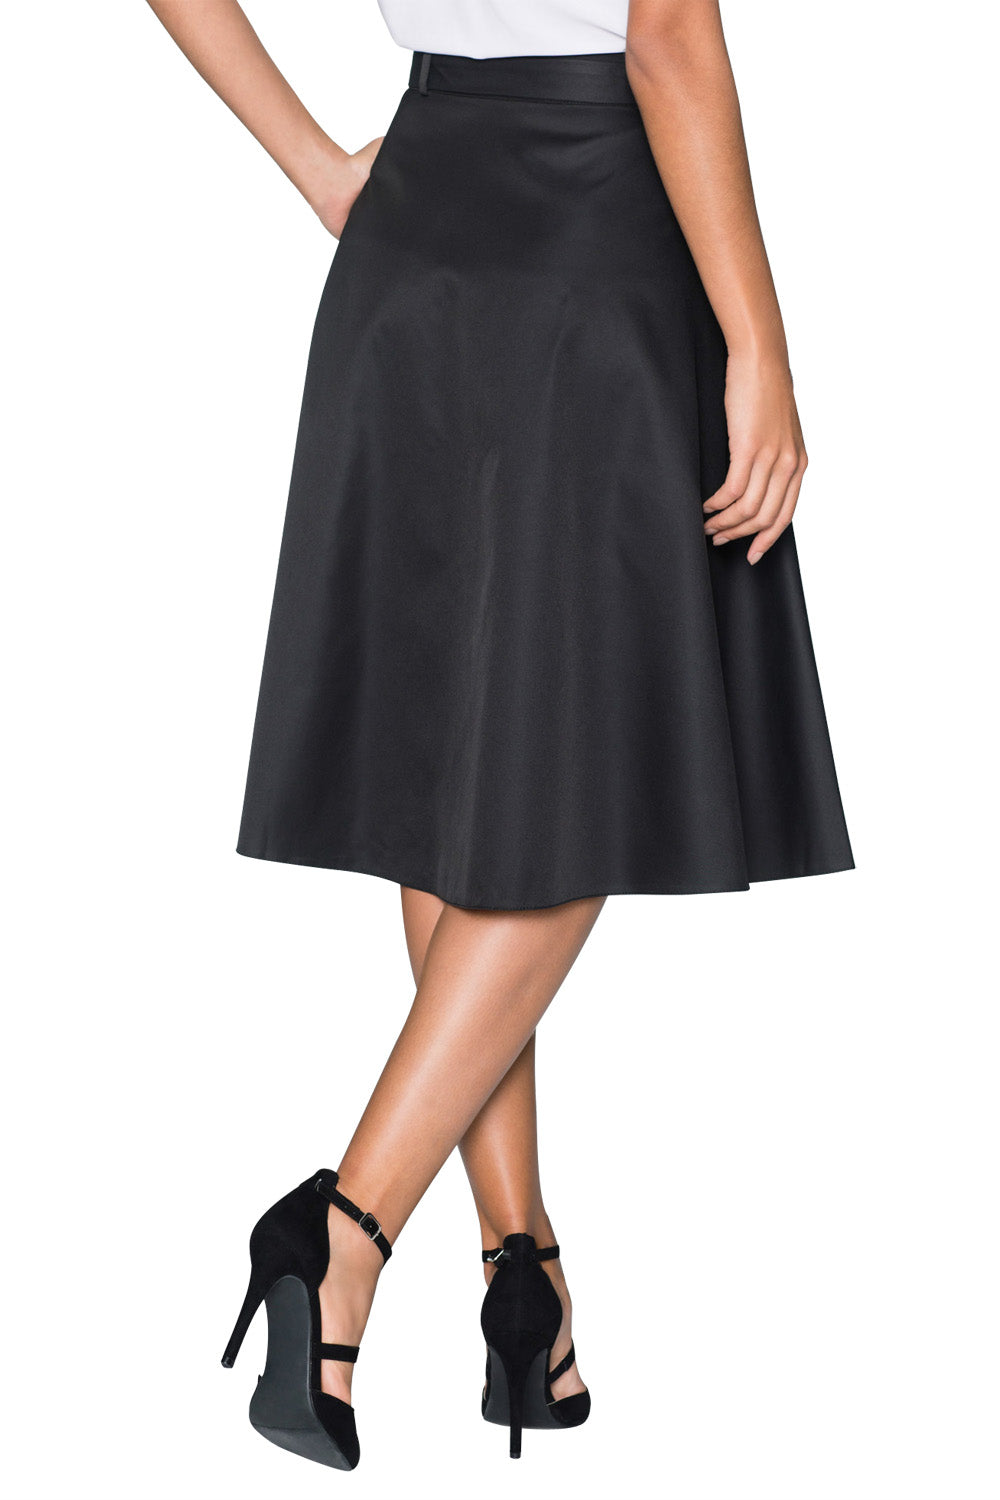 Elegant Retro Style Buttons Front Flared Midi Skirt in Black